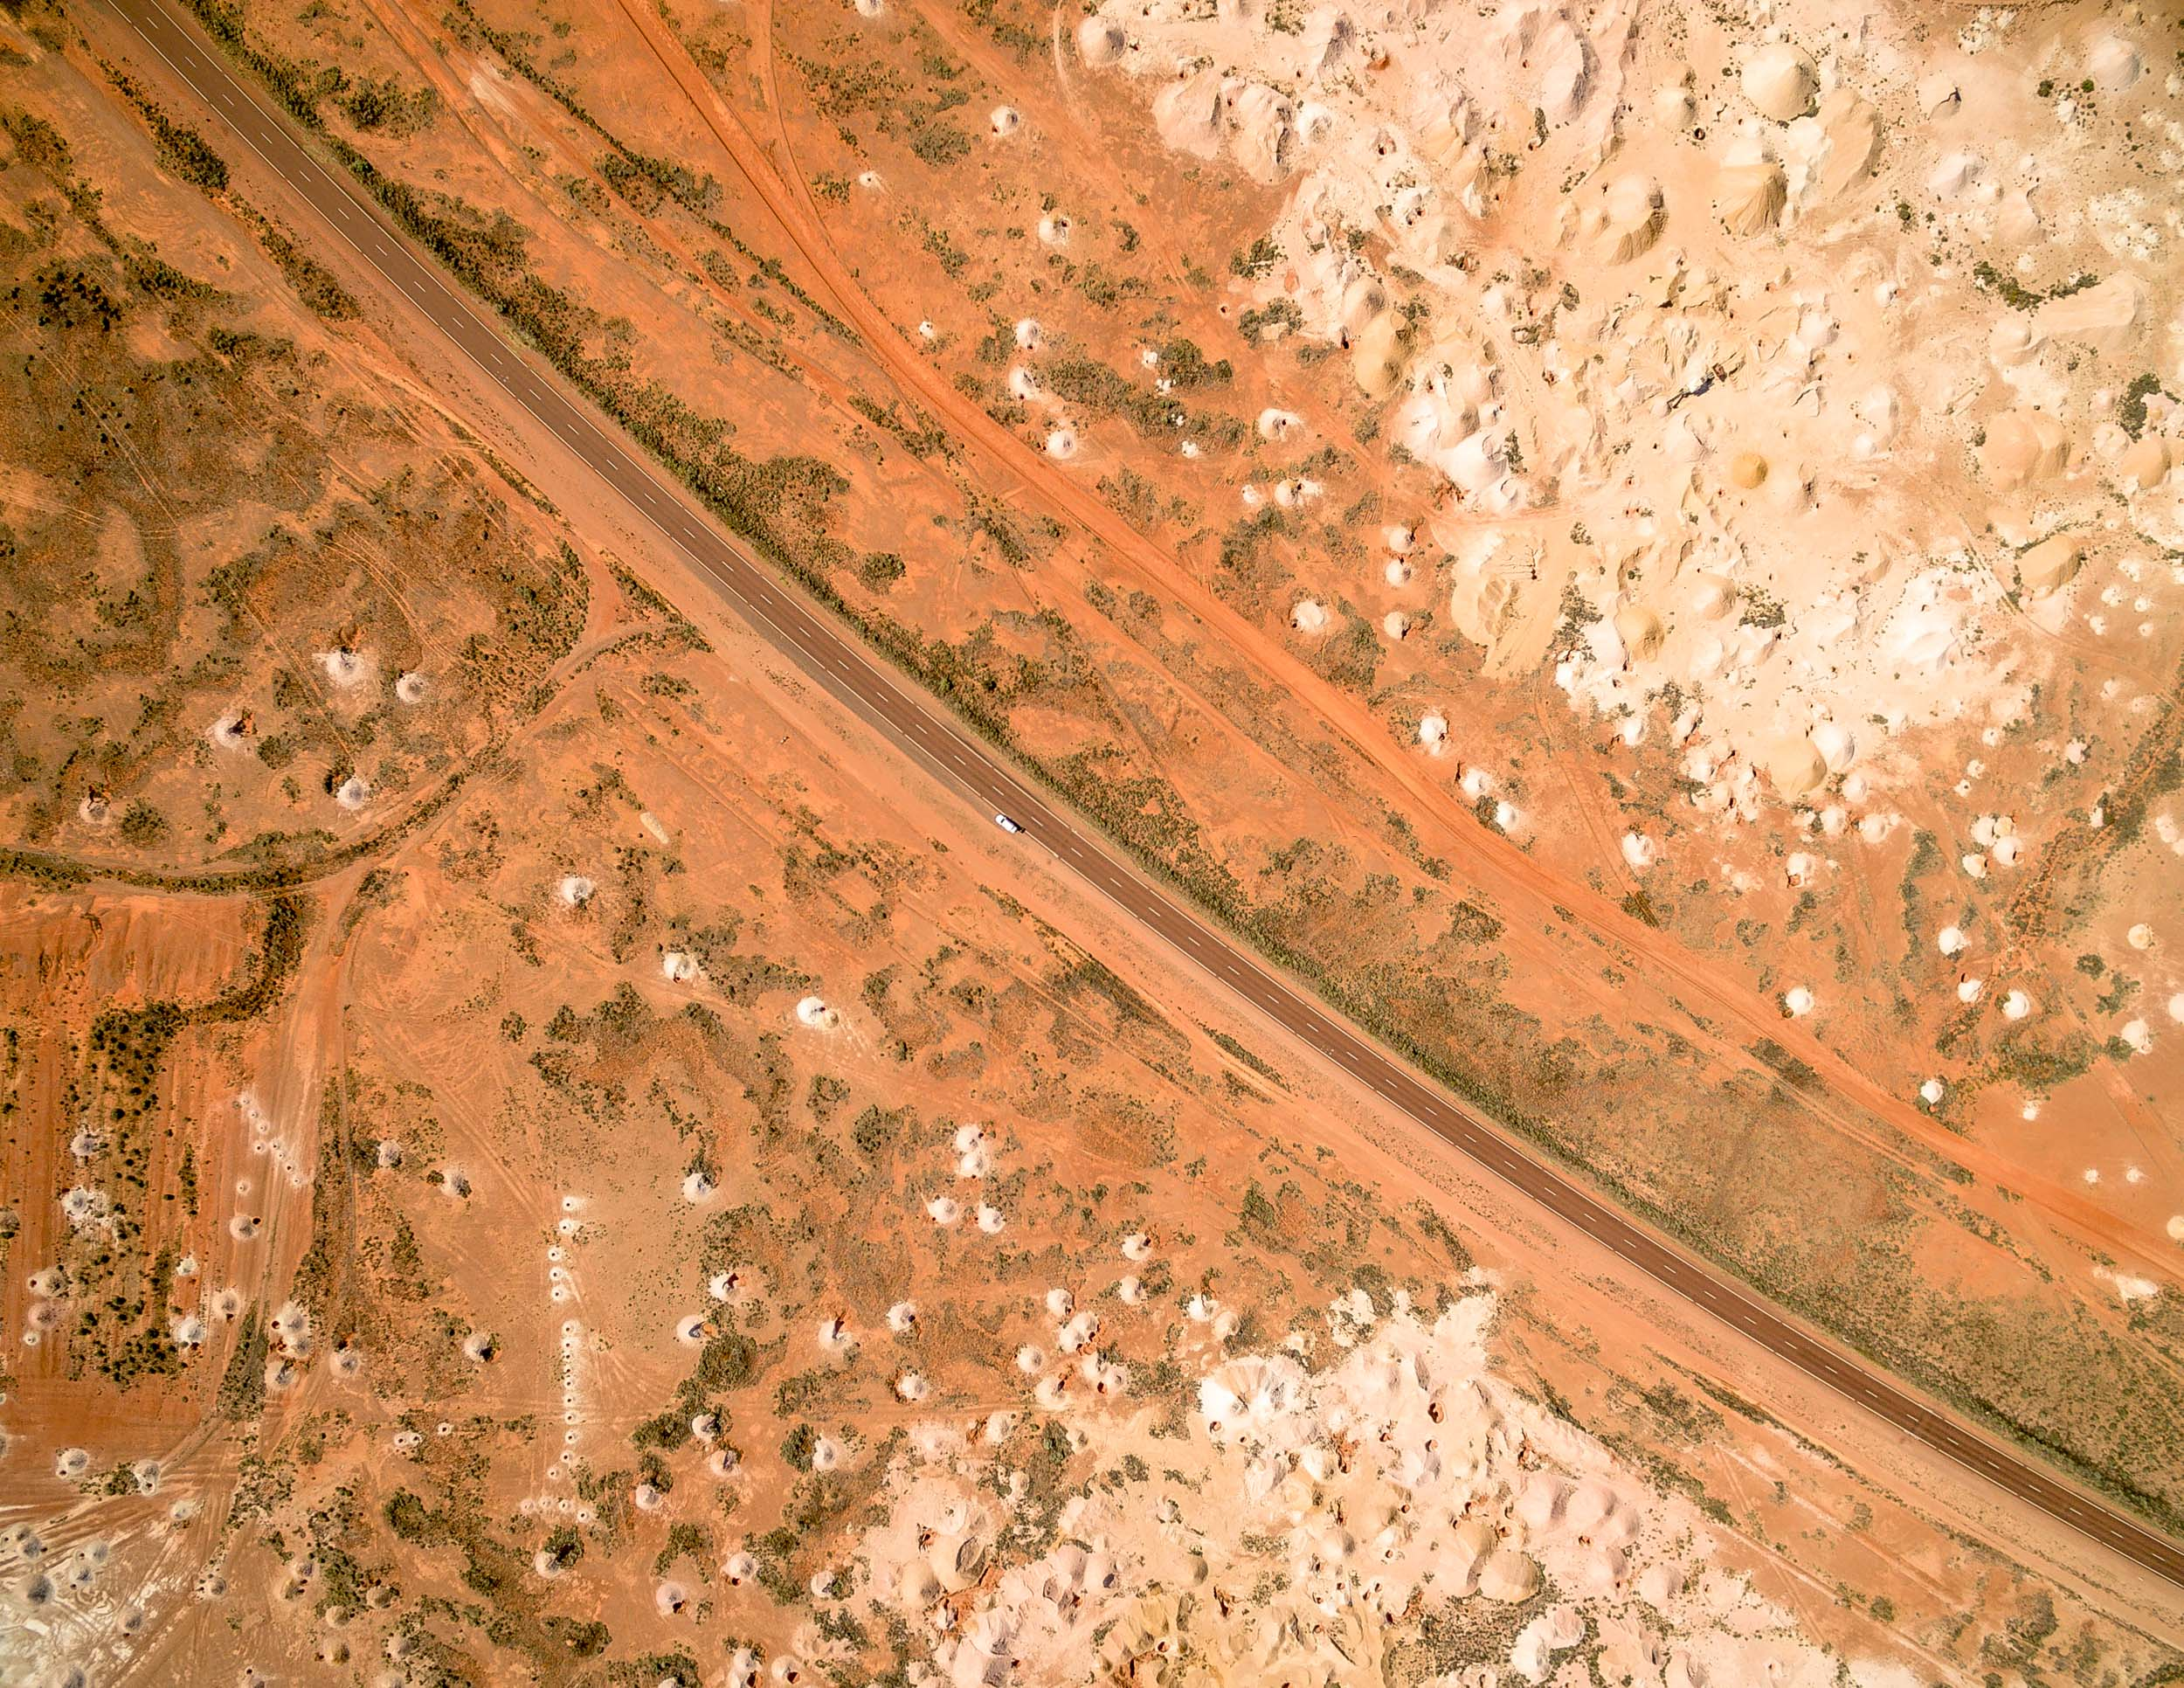 The Opal Mines of Coober Pedy, South Australia